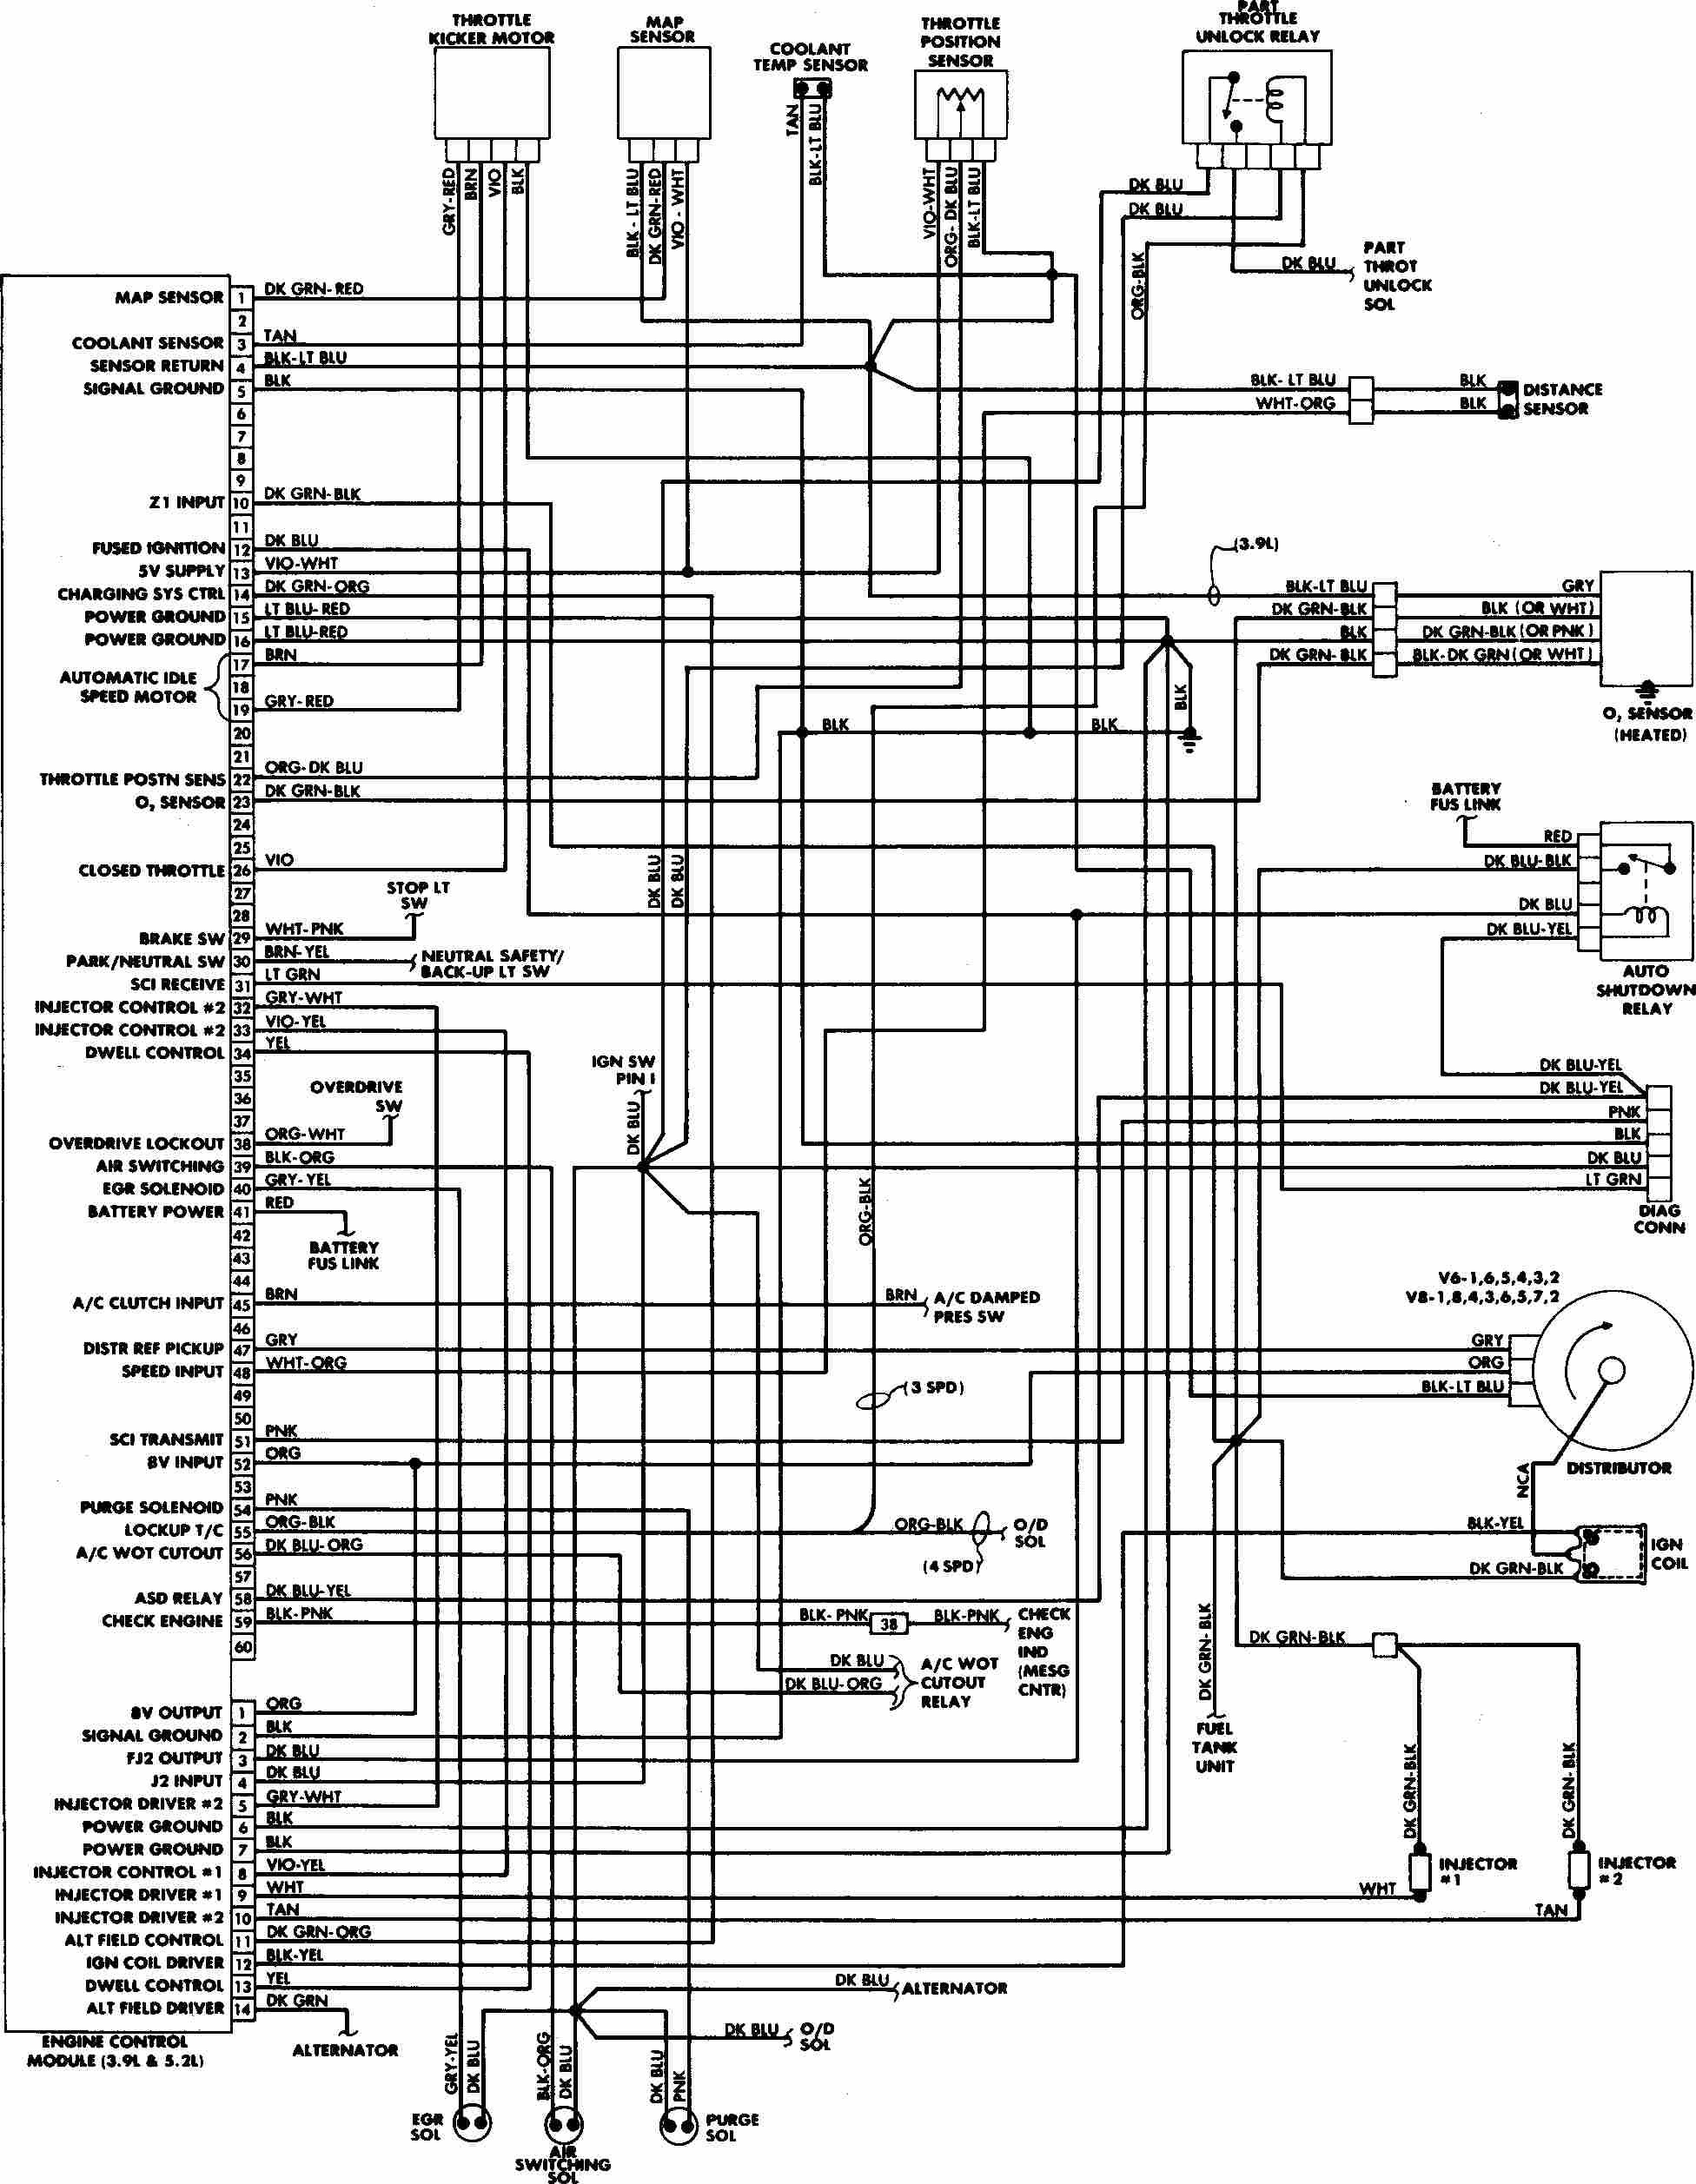 Engine Control Wiring Diagram Of 1988 Dodge W100 Electrical Diagram Dodge Ram 1500 Diagram